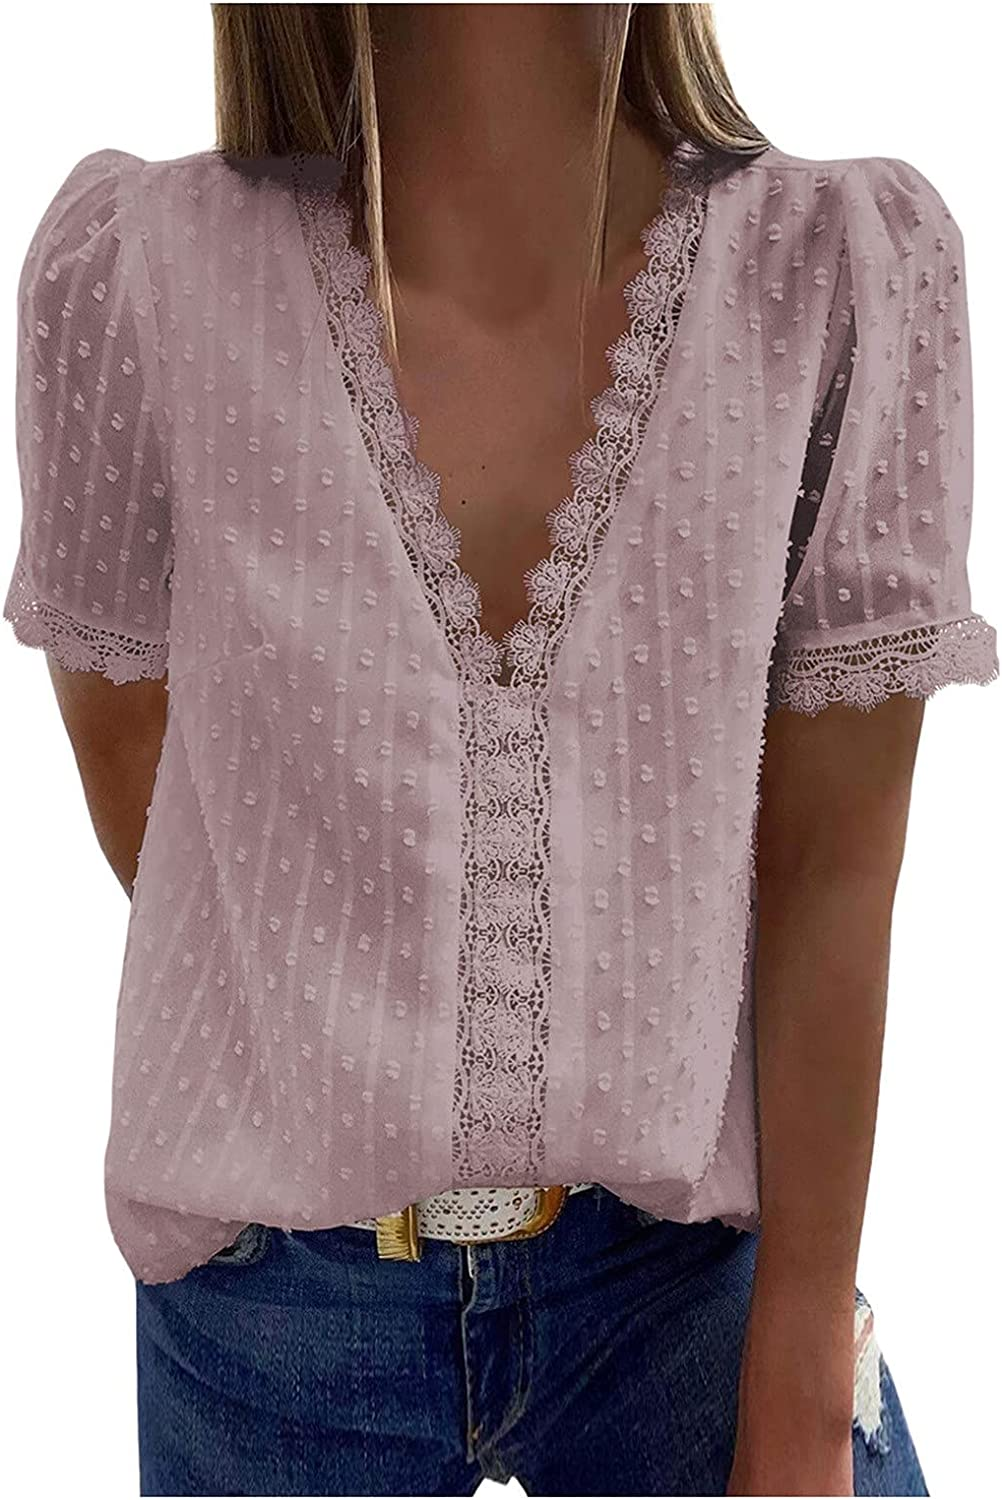 Sayhi Women Casual Lace Tank Top Vest Short Sleeve Blouse Camisole Cami Shirt Size Solid Color Loose Tee Shirts